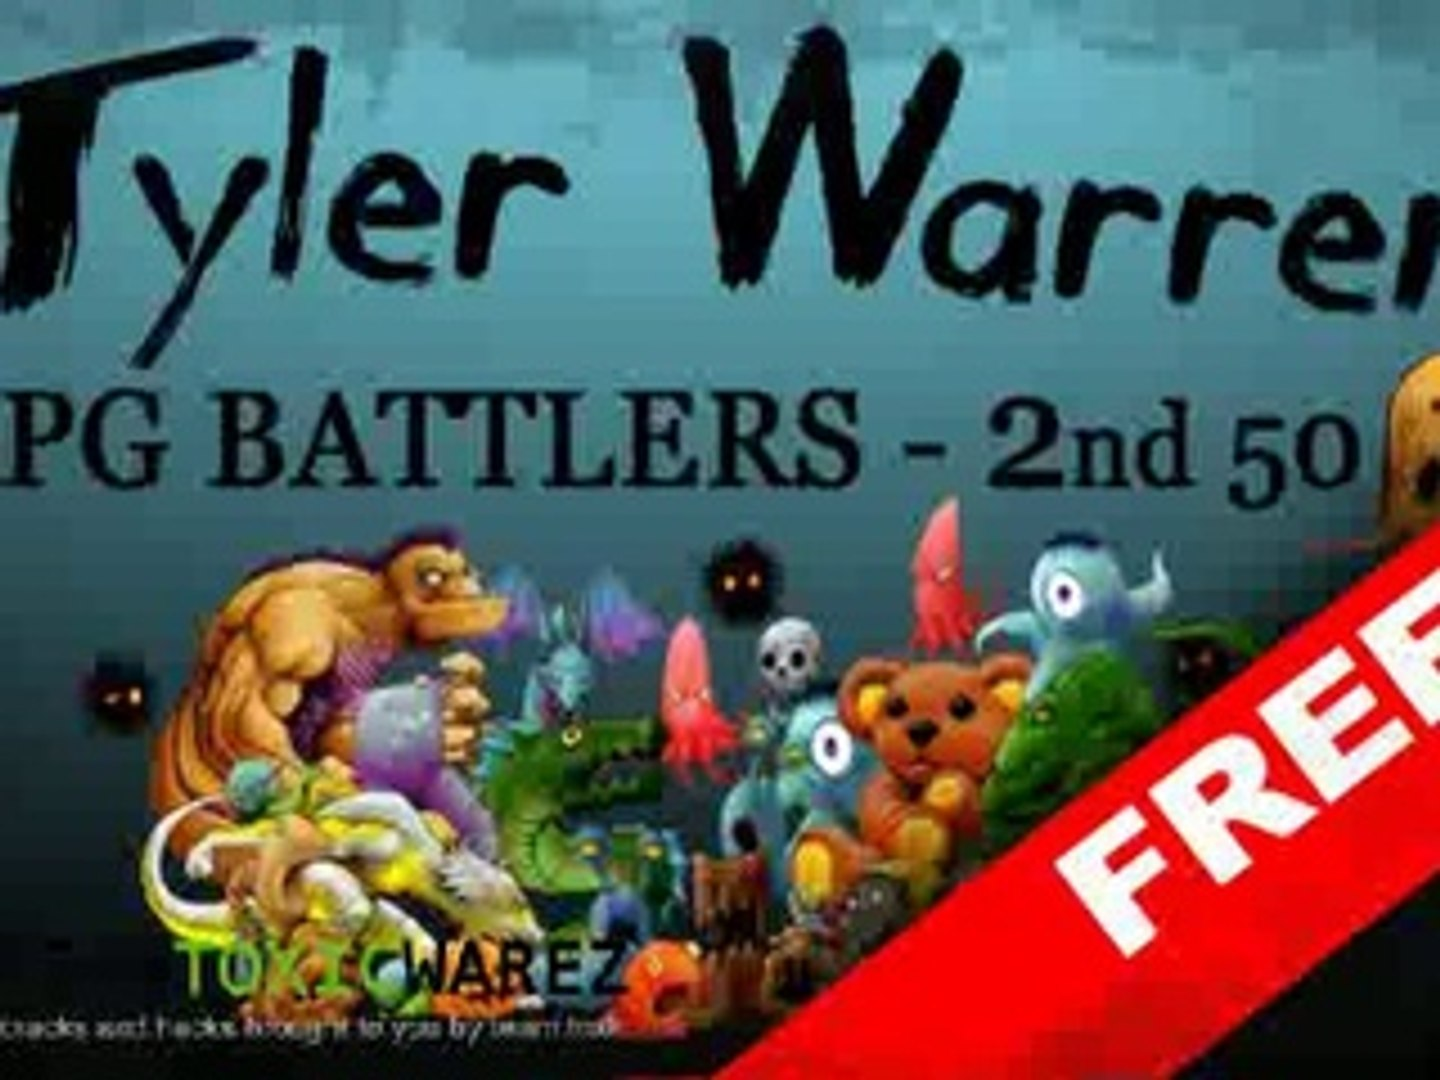 RPG Maker Tyler Warren RPG Battlers 2nd 50 Steam Code